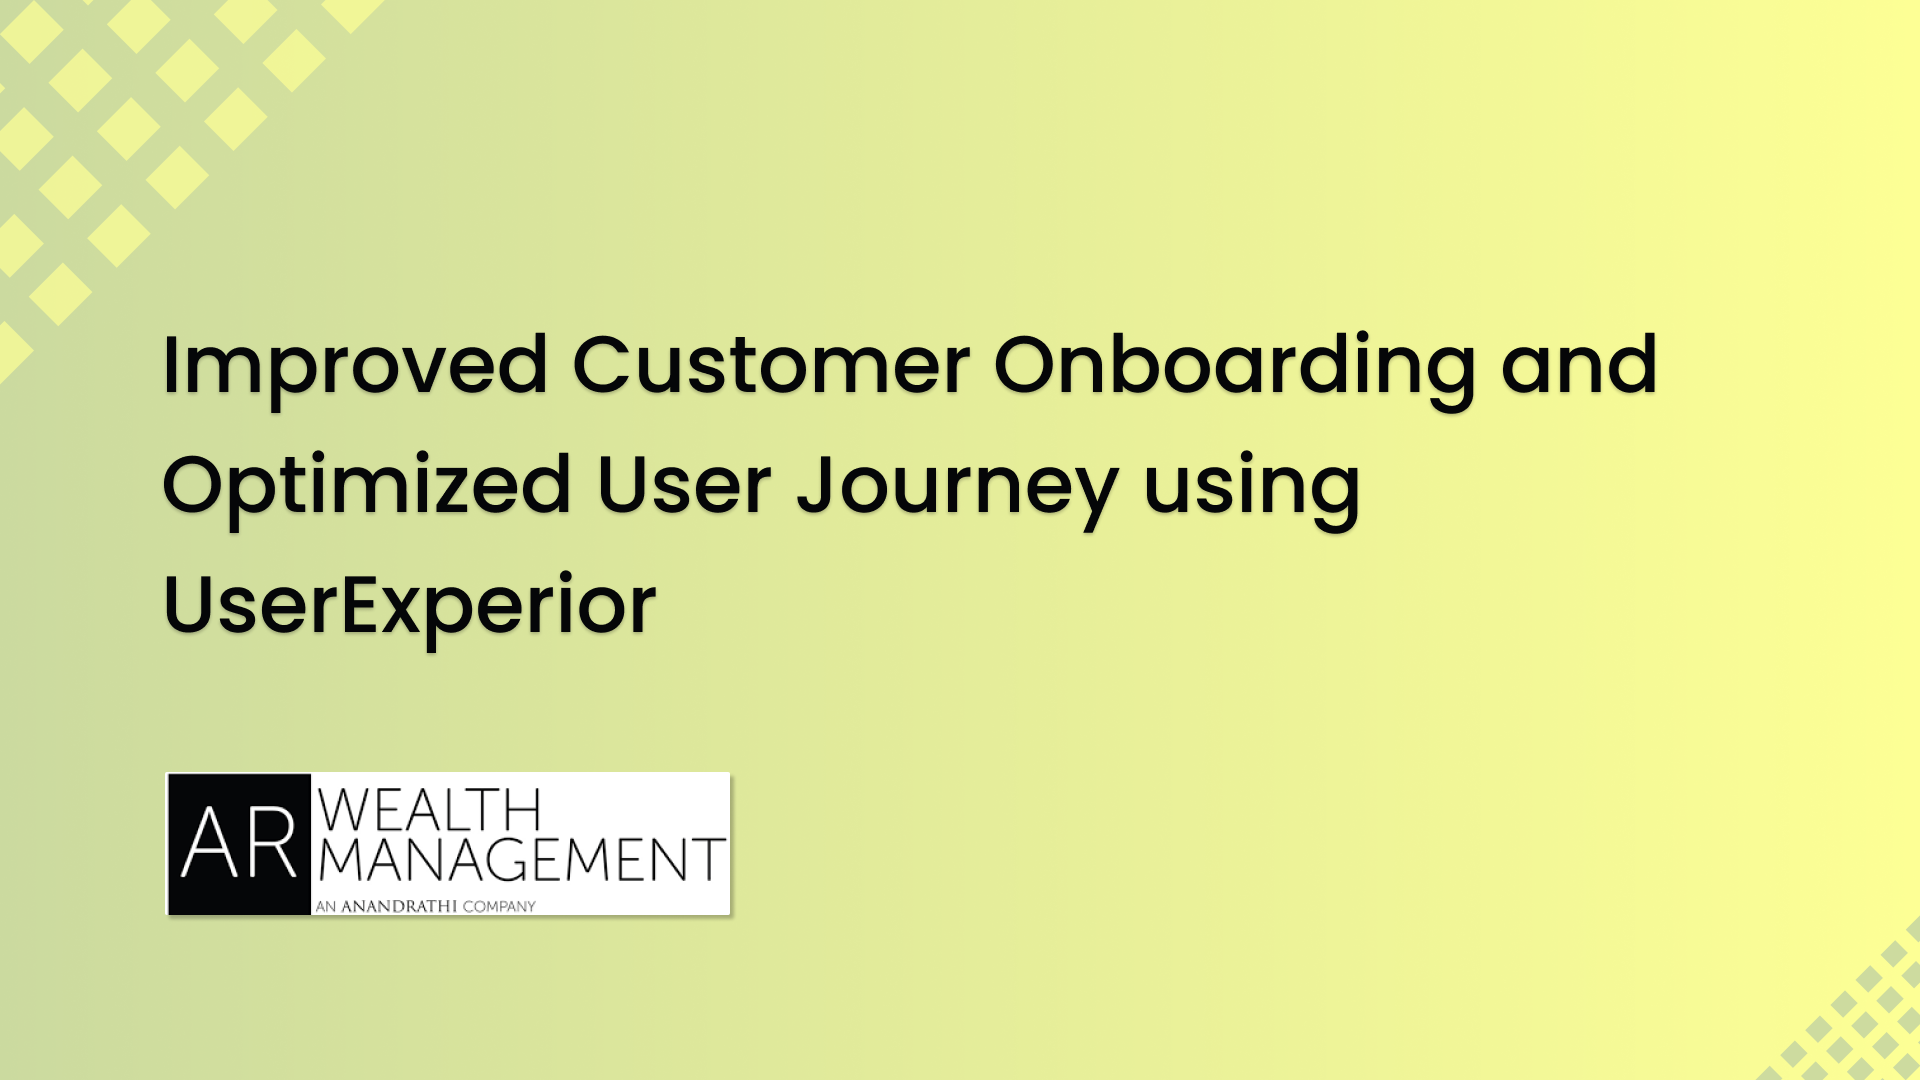 How Anand Rathi improved customer onboarding and optimised user journey using UserExperior